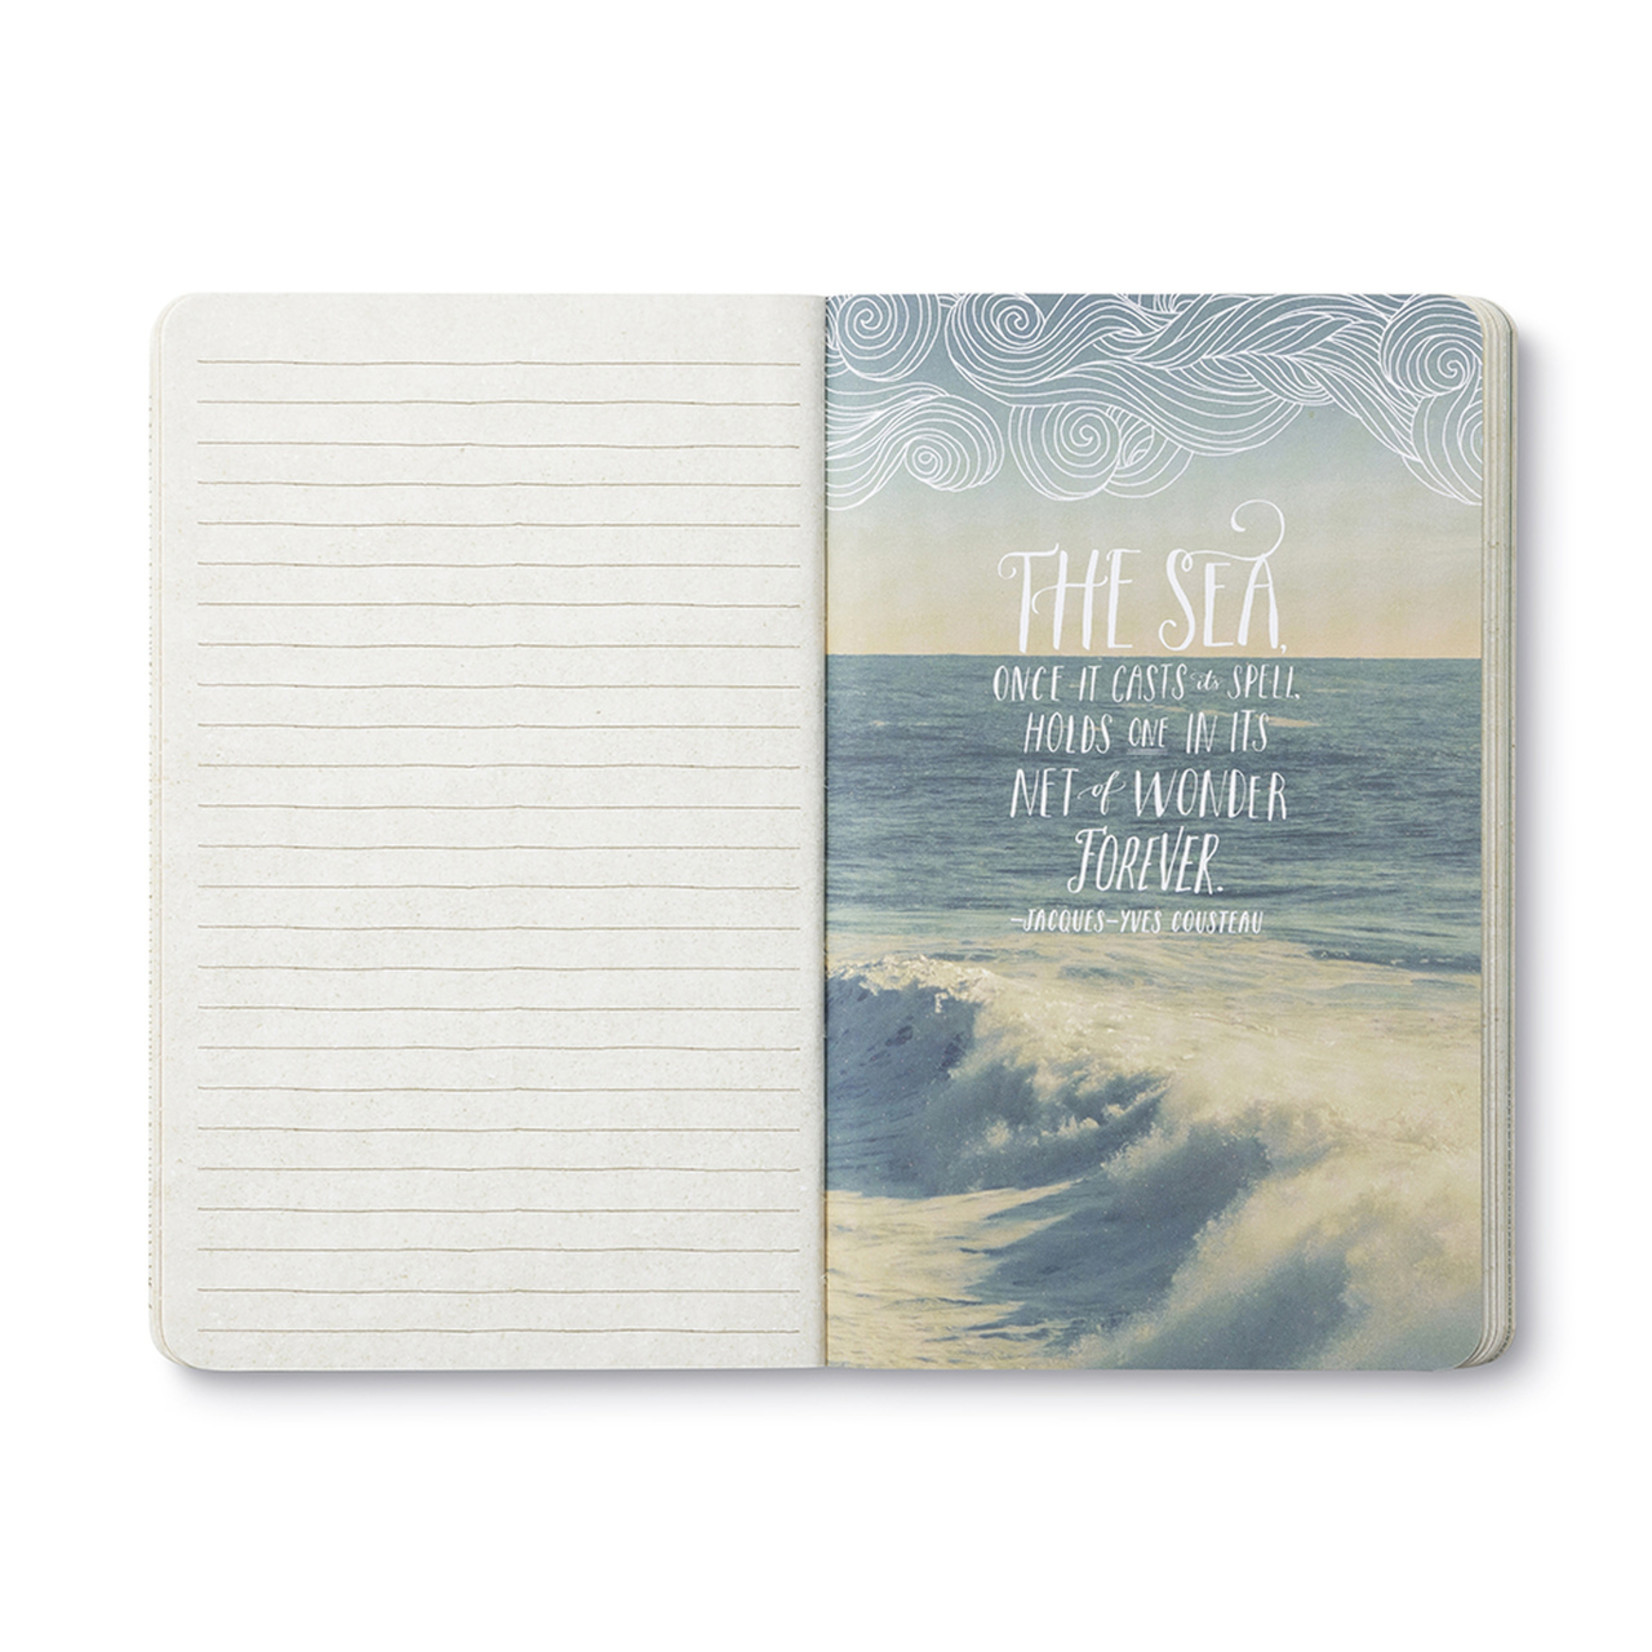 WRITE NOW JOURNAL - FIND WHAT BRINGS YOU JOY